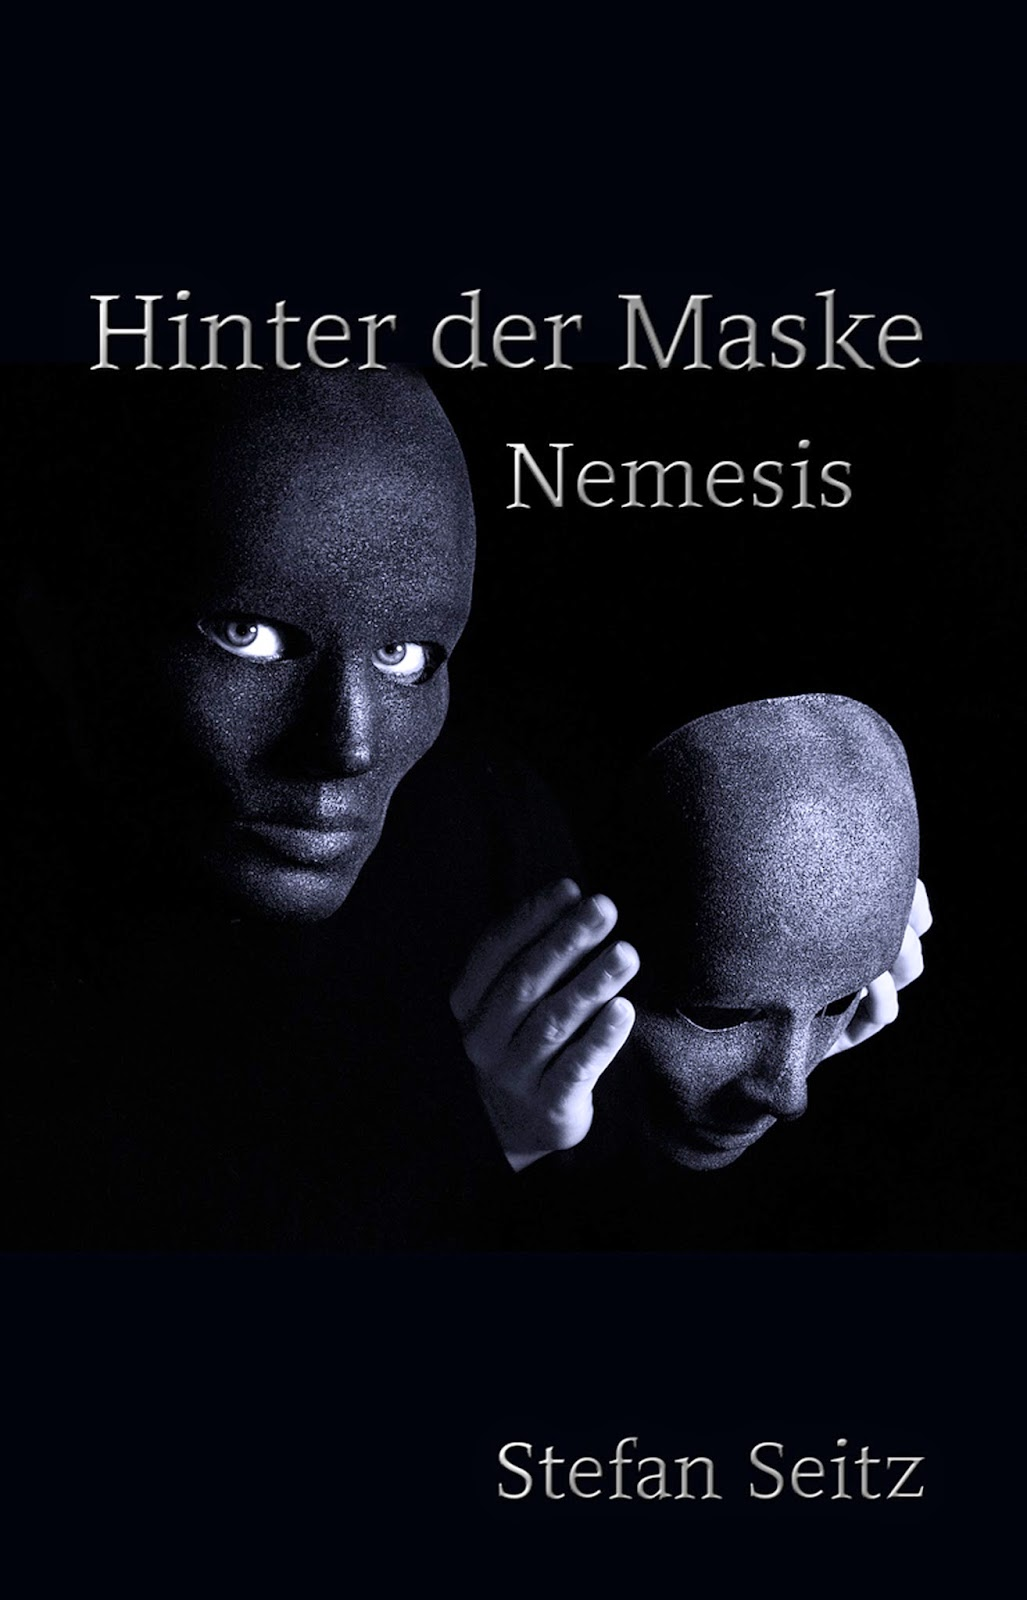 http://www.amazon.de/Hinter-Maske-Nemesis-Stefan-Seitz-ebook/dp/B00RPP0576/ref=sr_1_7?s=digital-text&ie=UTF8&qid=1454772513&sr=1-7&keywords=Hinter+der+Maske